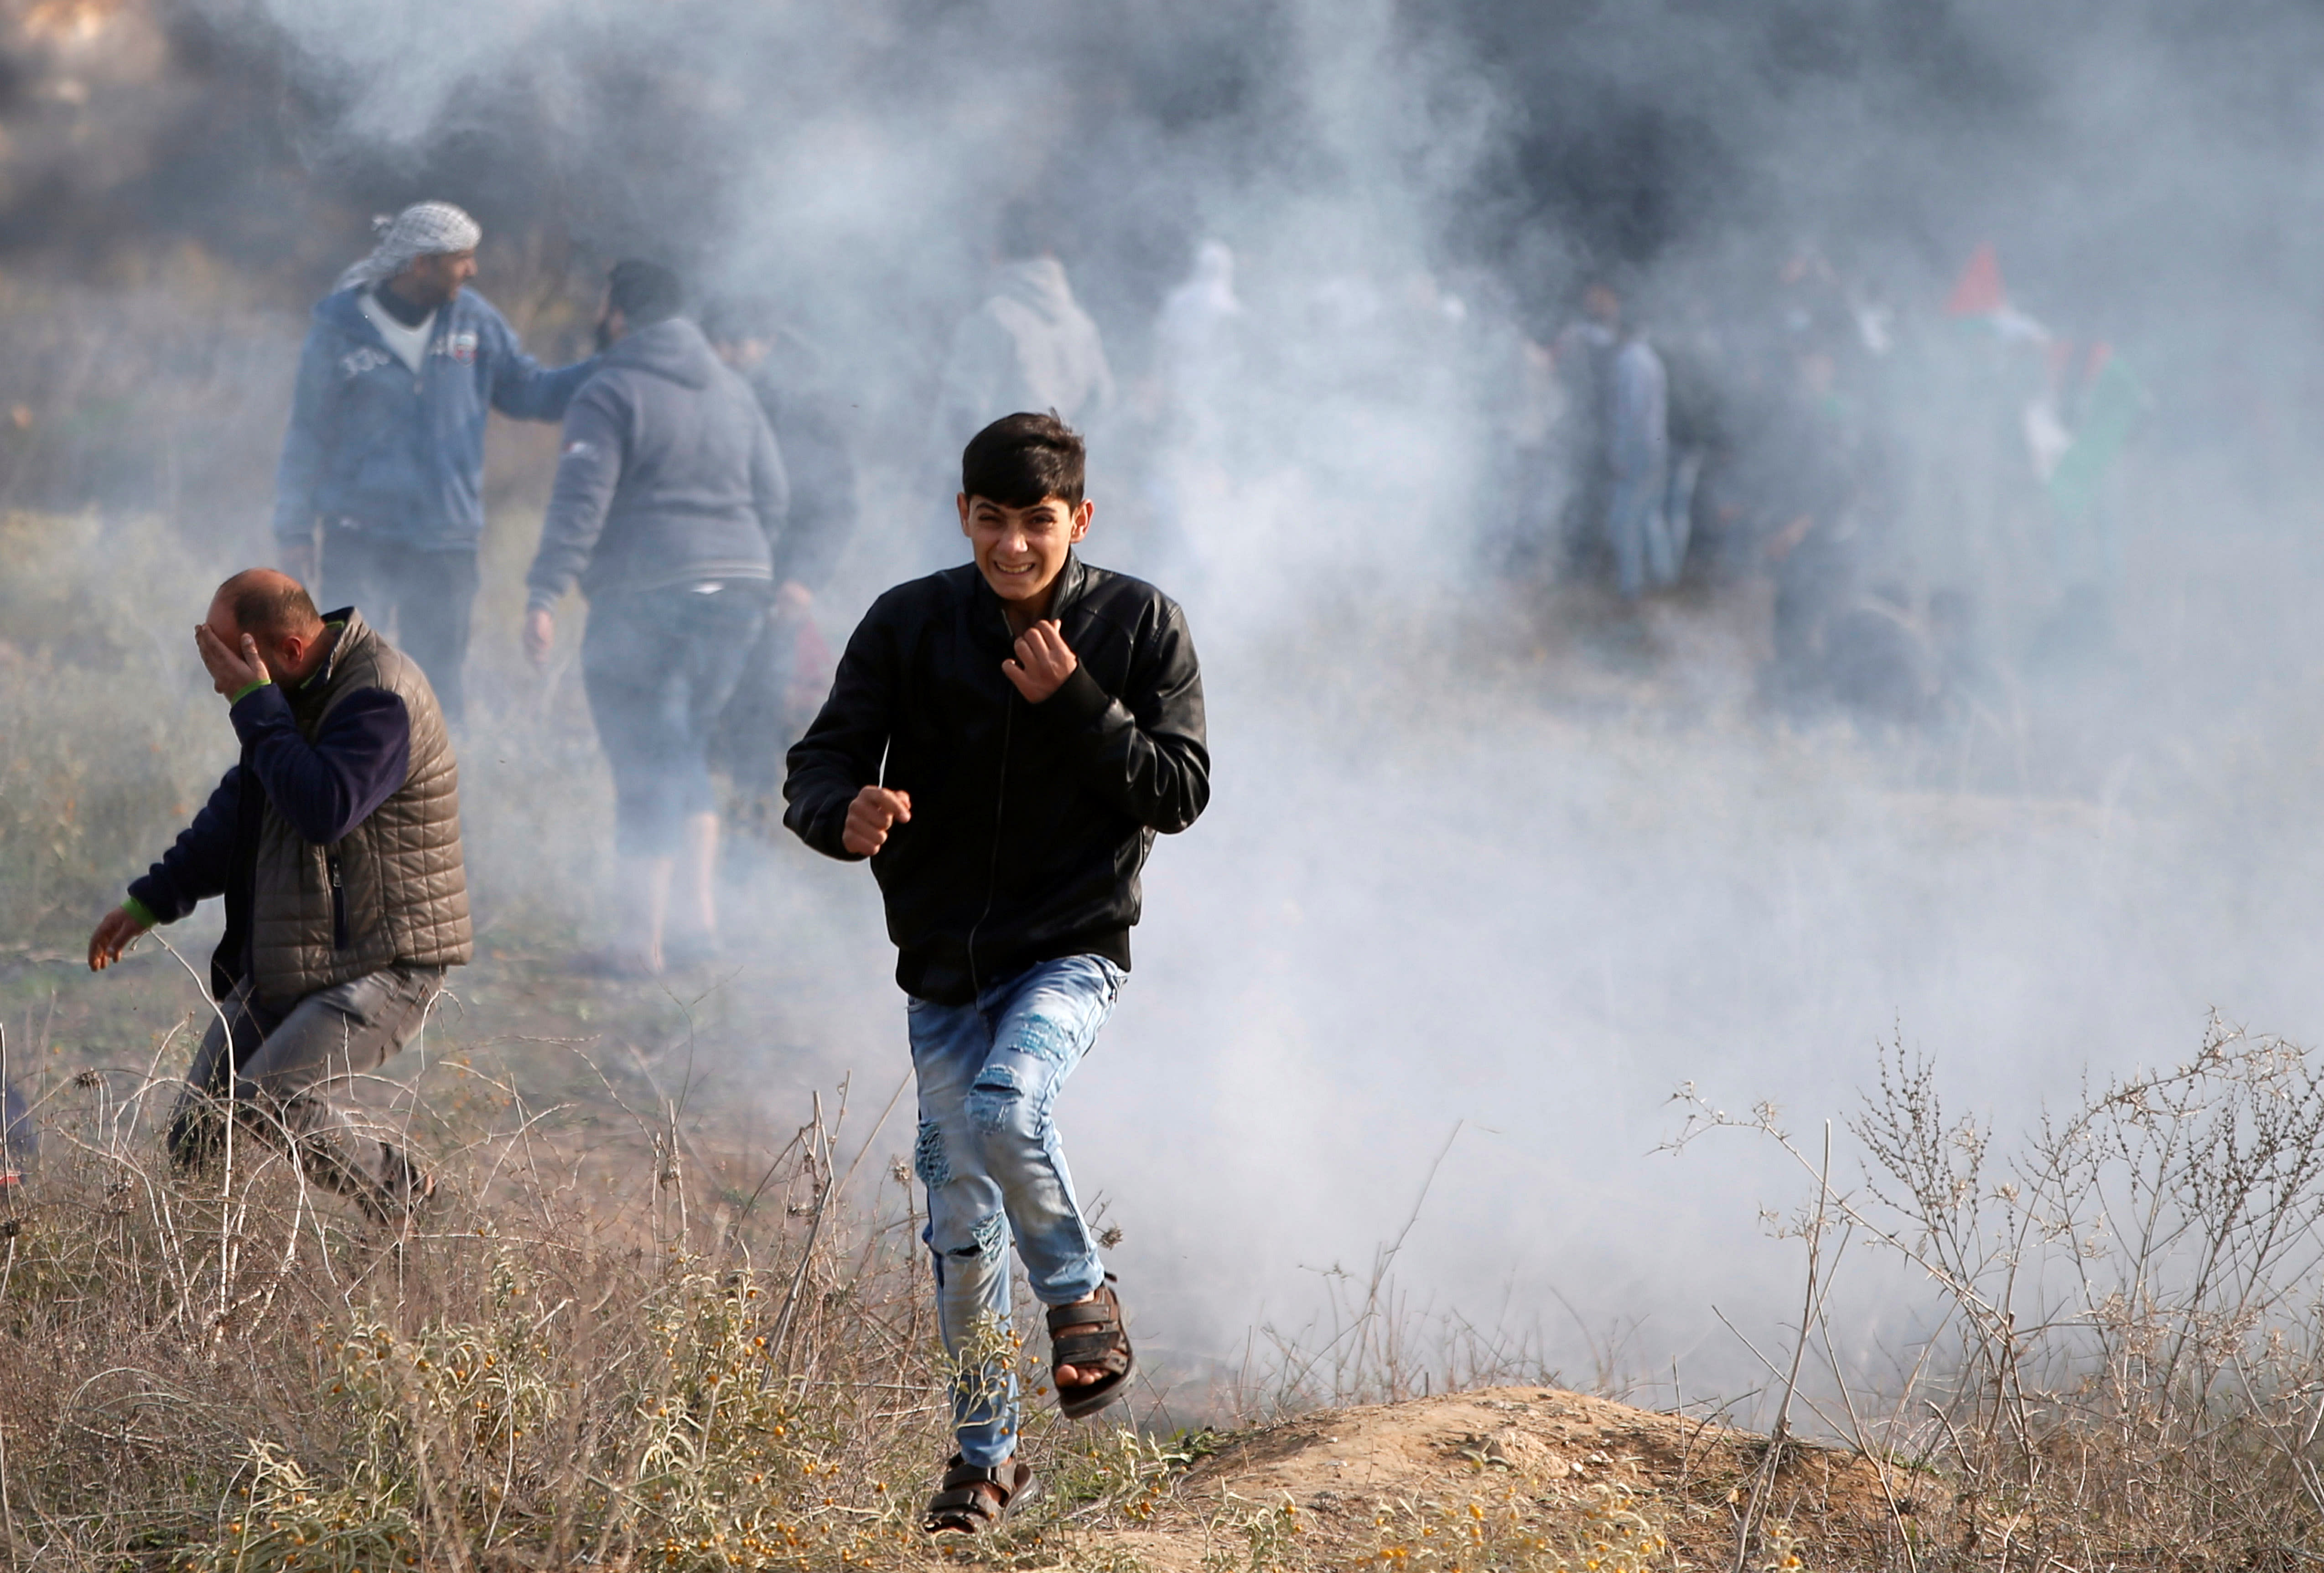 """Palestinian protesters react to tear gas fired by Israeli troops during clashes as Palestinians call for a """"day of rage"""" in response to U.S. President Donald Trump's recognition of Jerusalem as Israel's capital, near the Jewish settlement of Beit El, near the West Bank city of Ramallah December 8, 2017"""